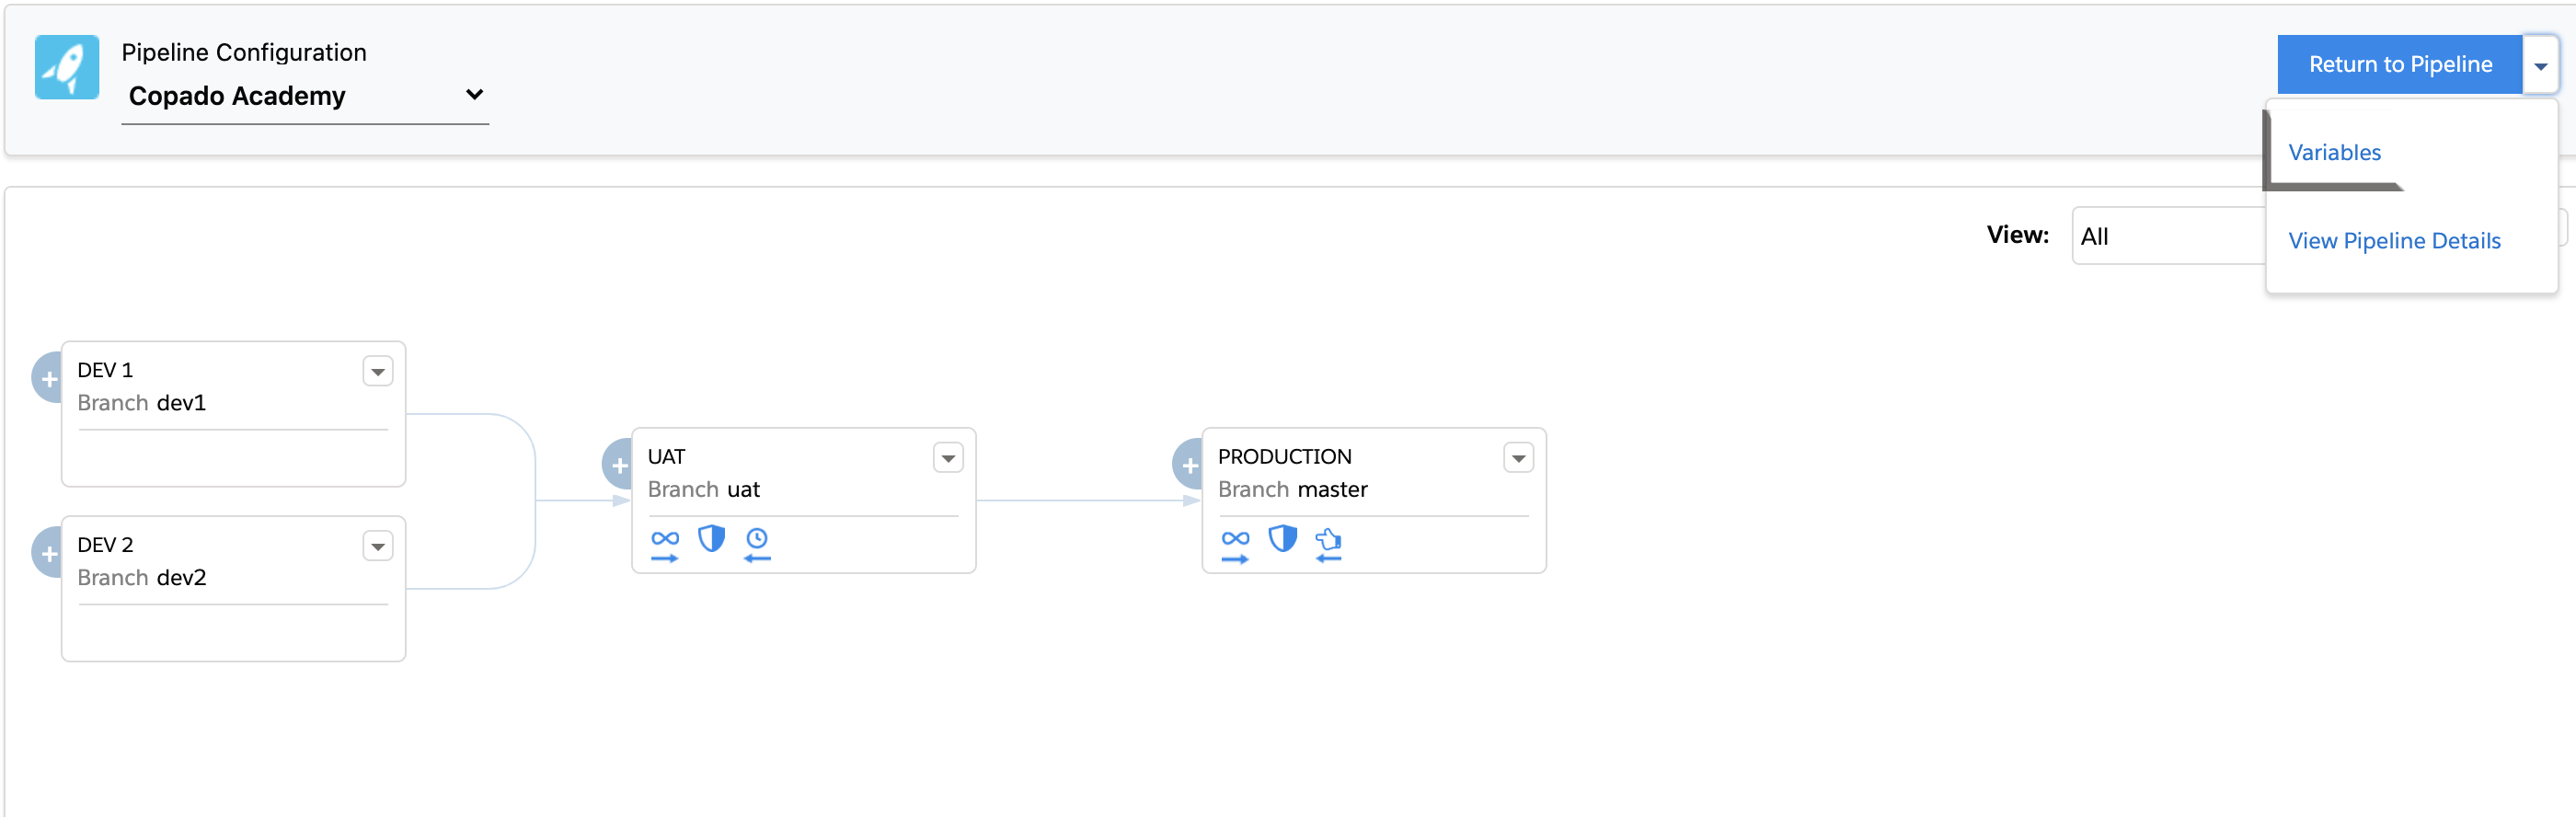 Variables link on Pipeline Configuration page